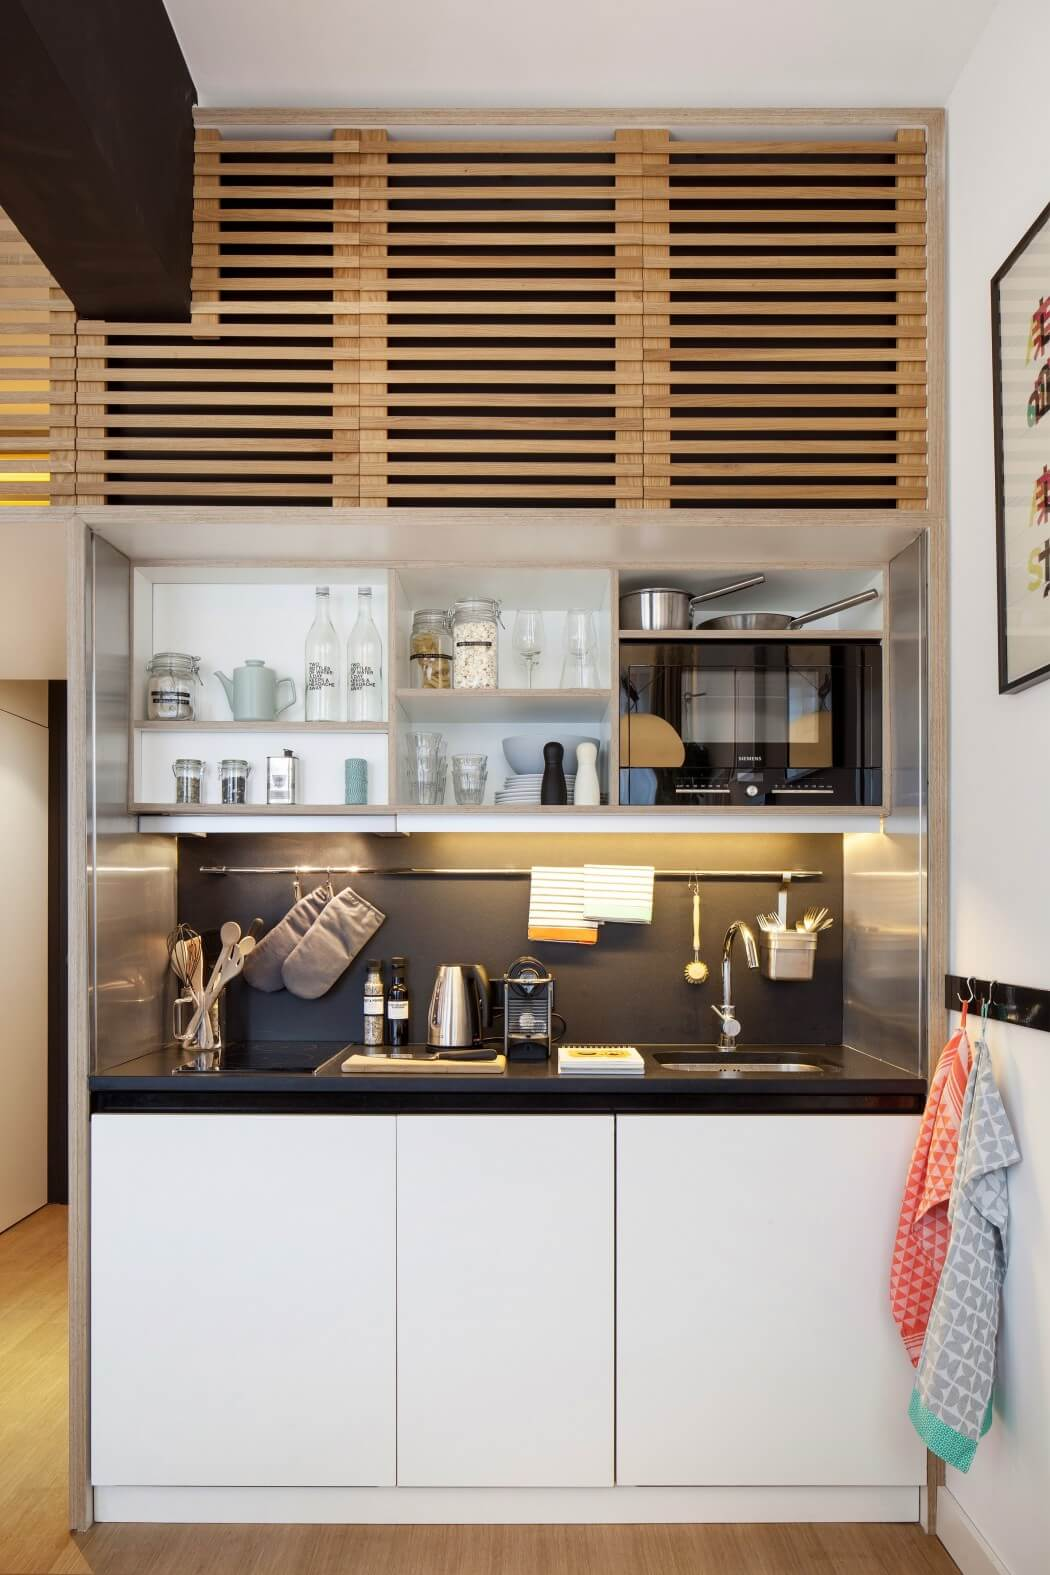 Micro Kitchen Design Dilemma An Excellent Micro Apartment Design Home Design Find